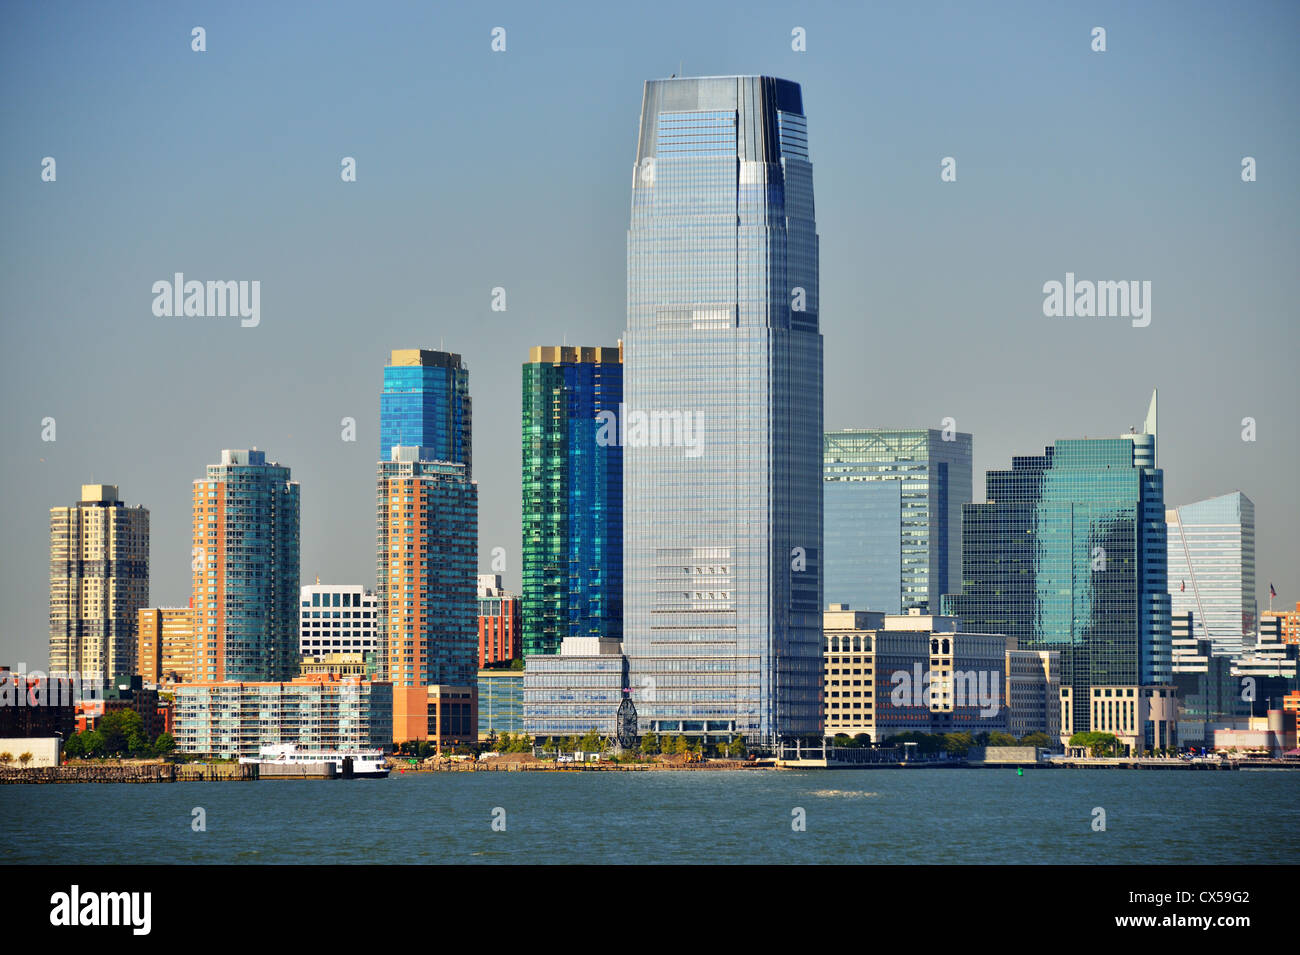 Skyline di Exchange Place a Jersey City, New Jersey, USA. Immagini Stock